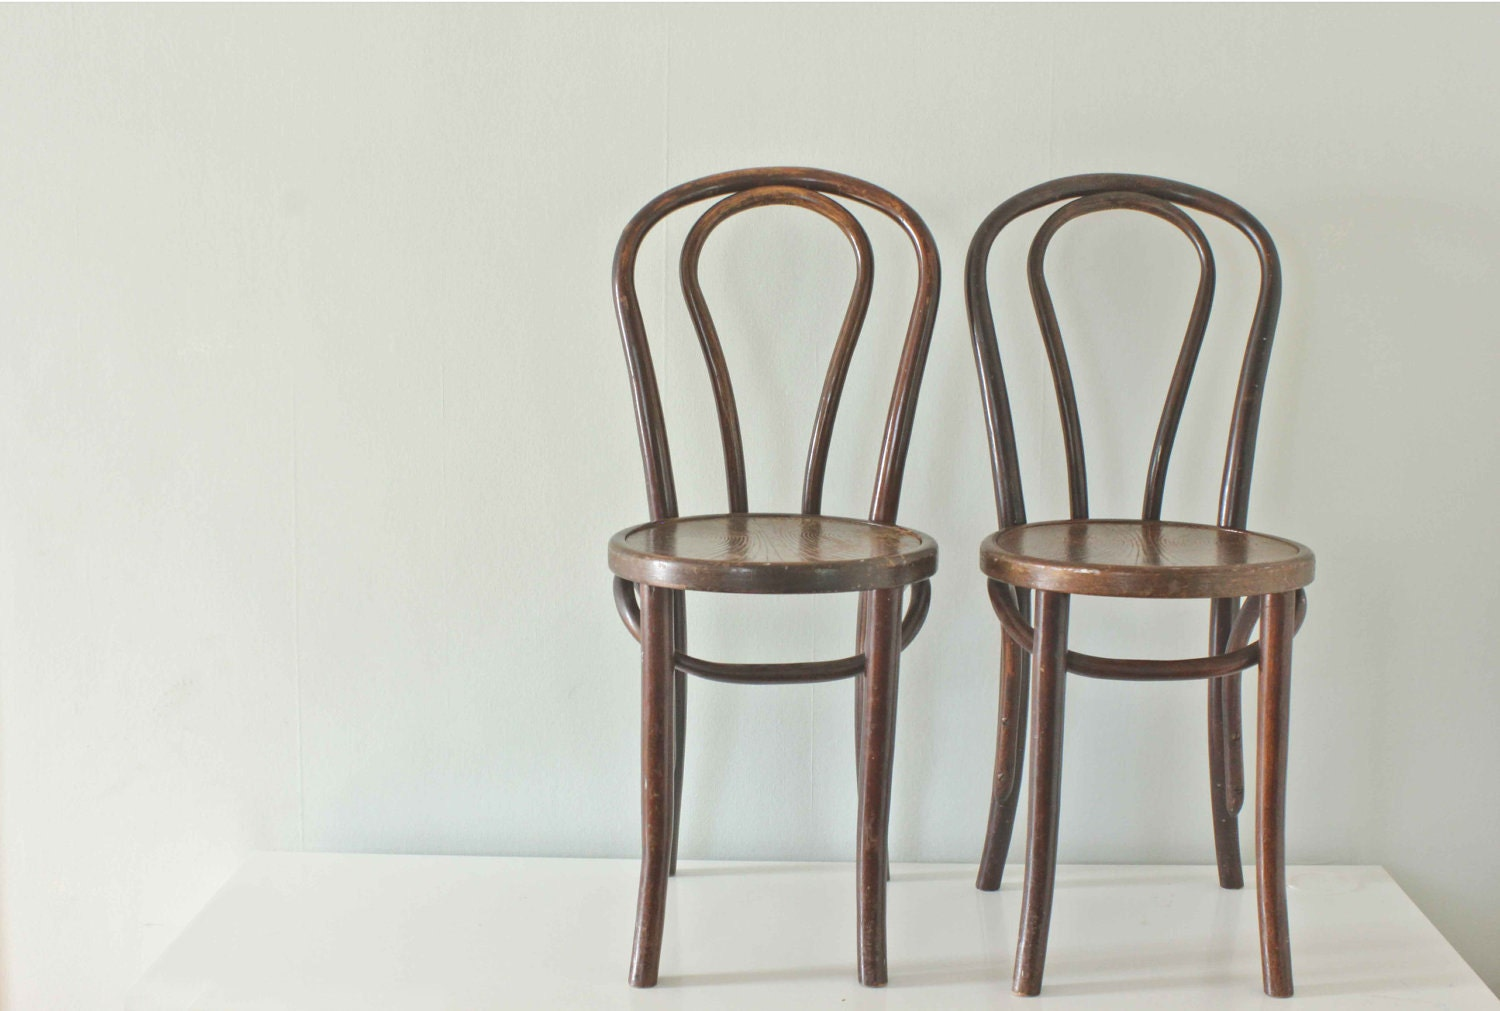 Wood Bistro Chairs Thonet Style Bentwood From The 1930 S